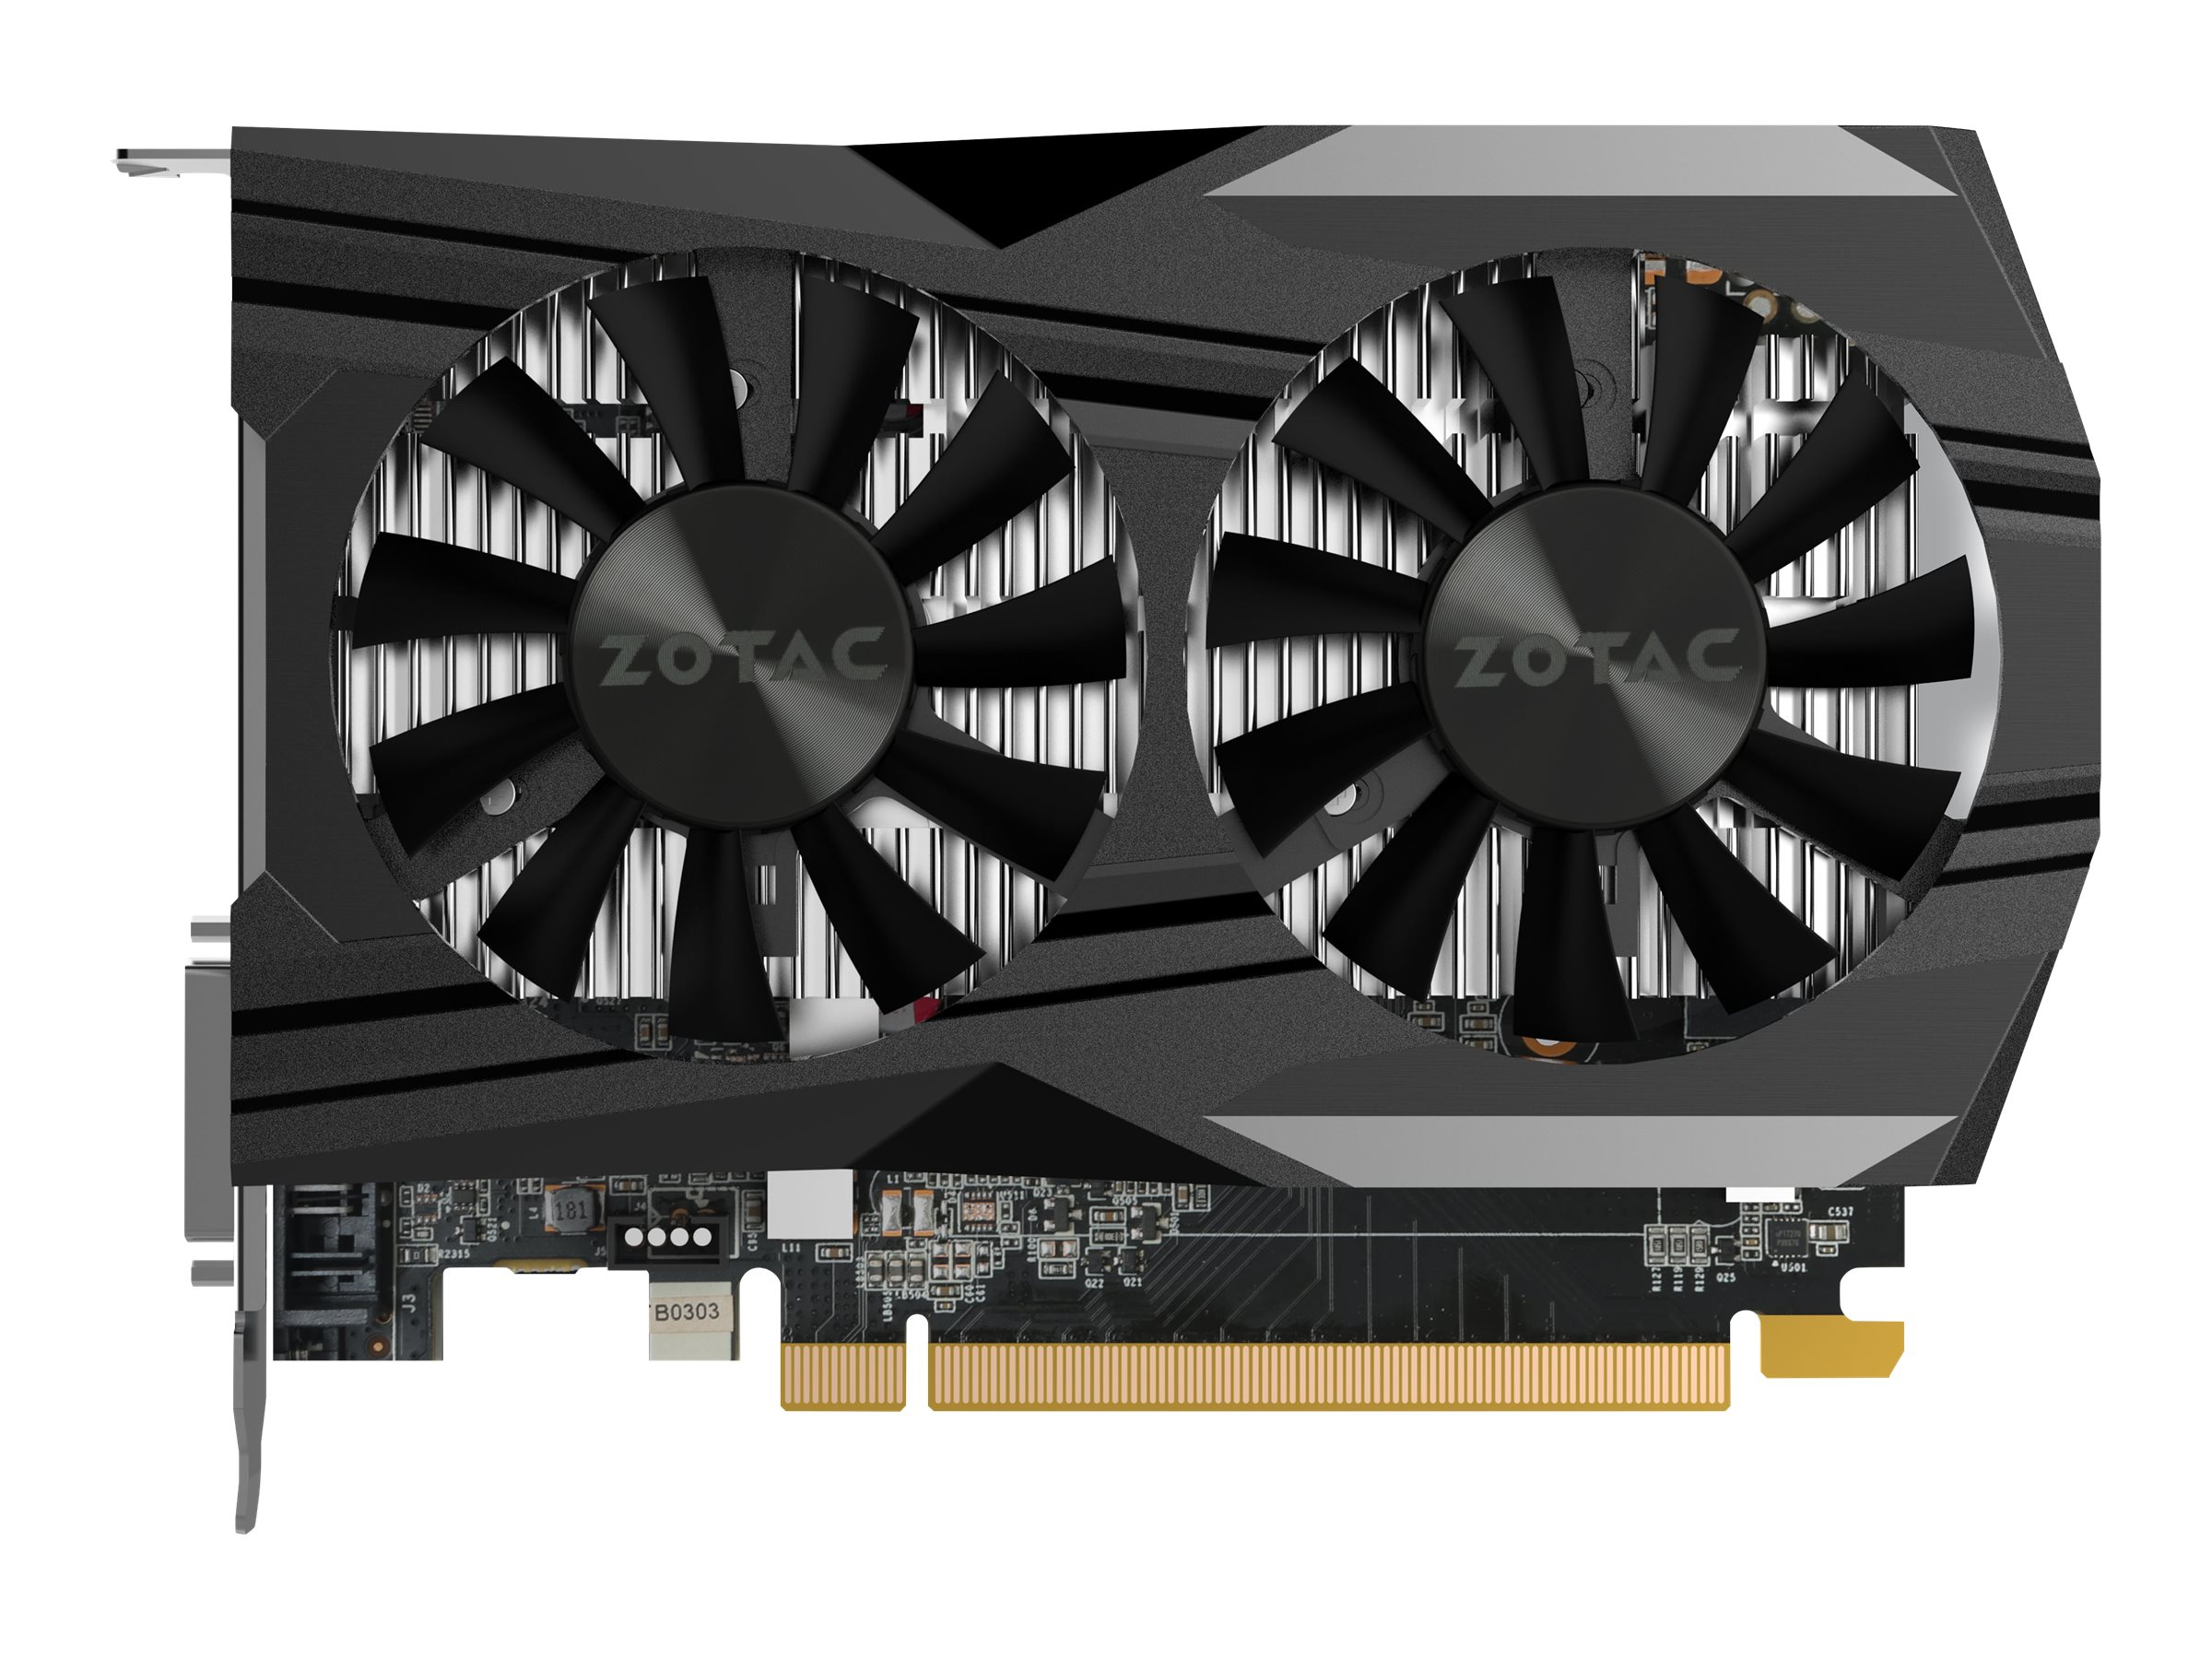 ZOTAC GeForce GTX 1050 - OC Edition - Grafikkarten - NVIDIA GeForce GTX 1050 - 2 GB GDDR5 - PCIe 3.0 x16